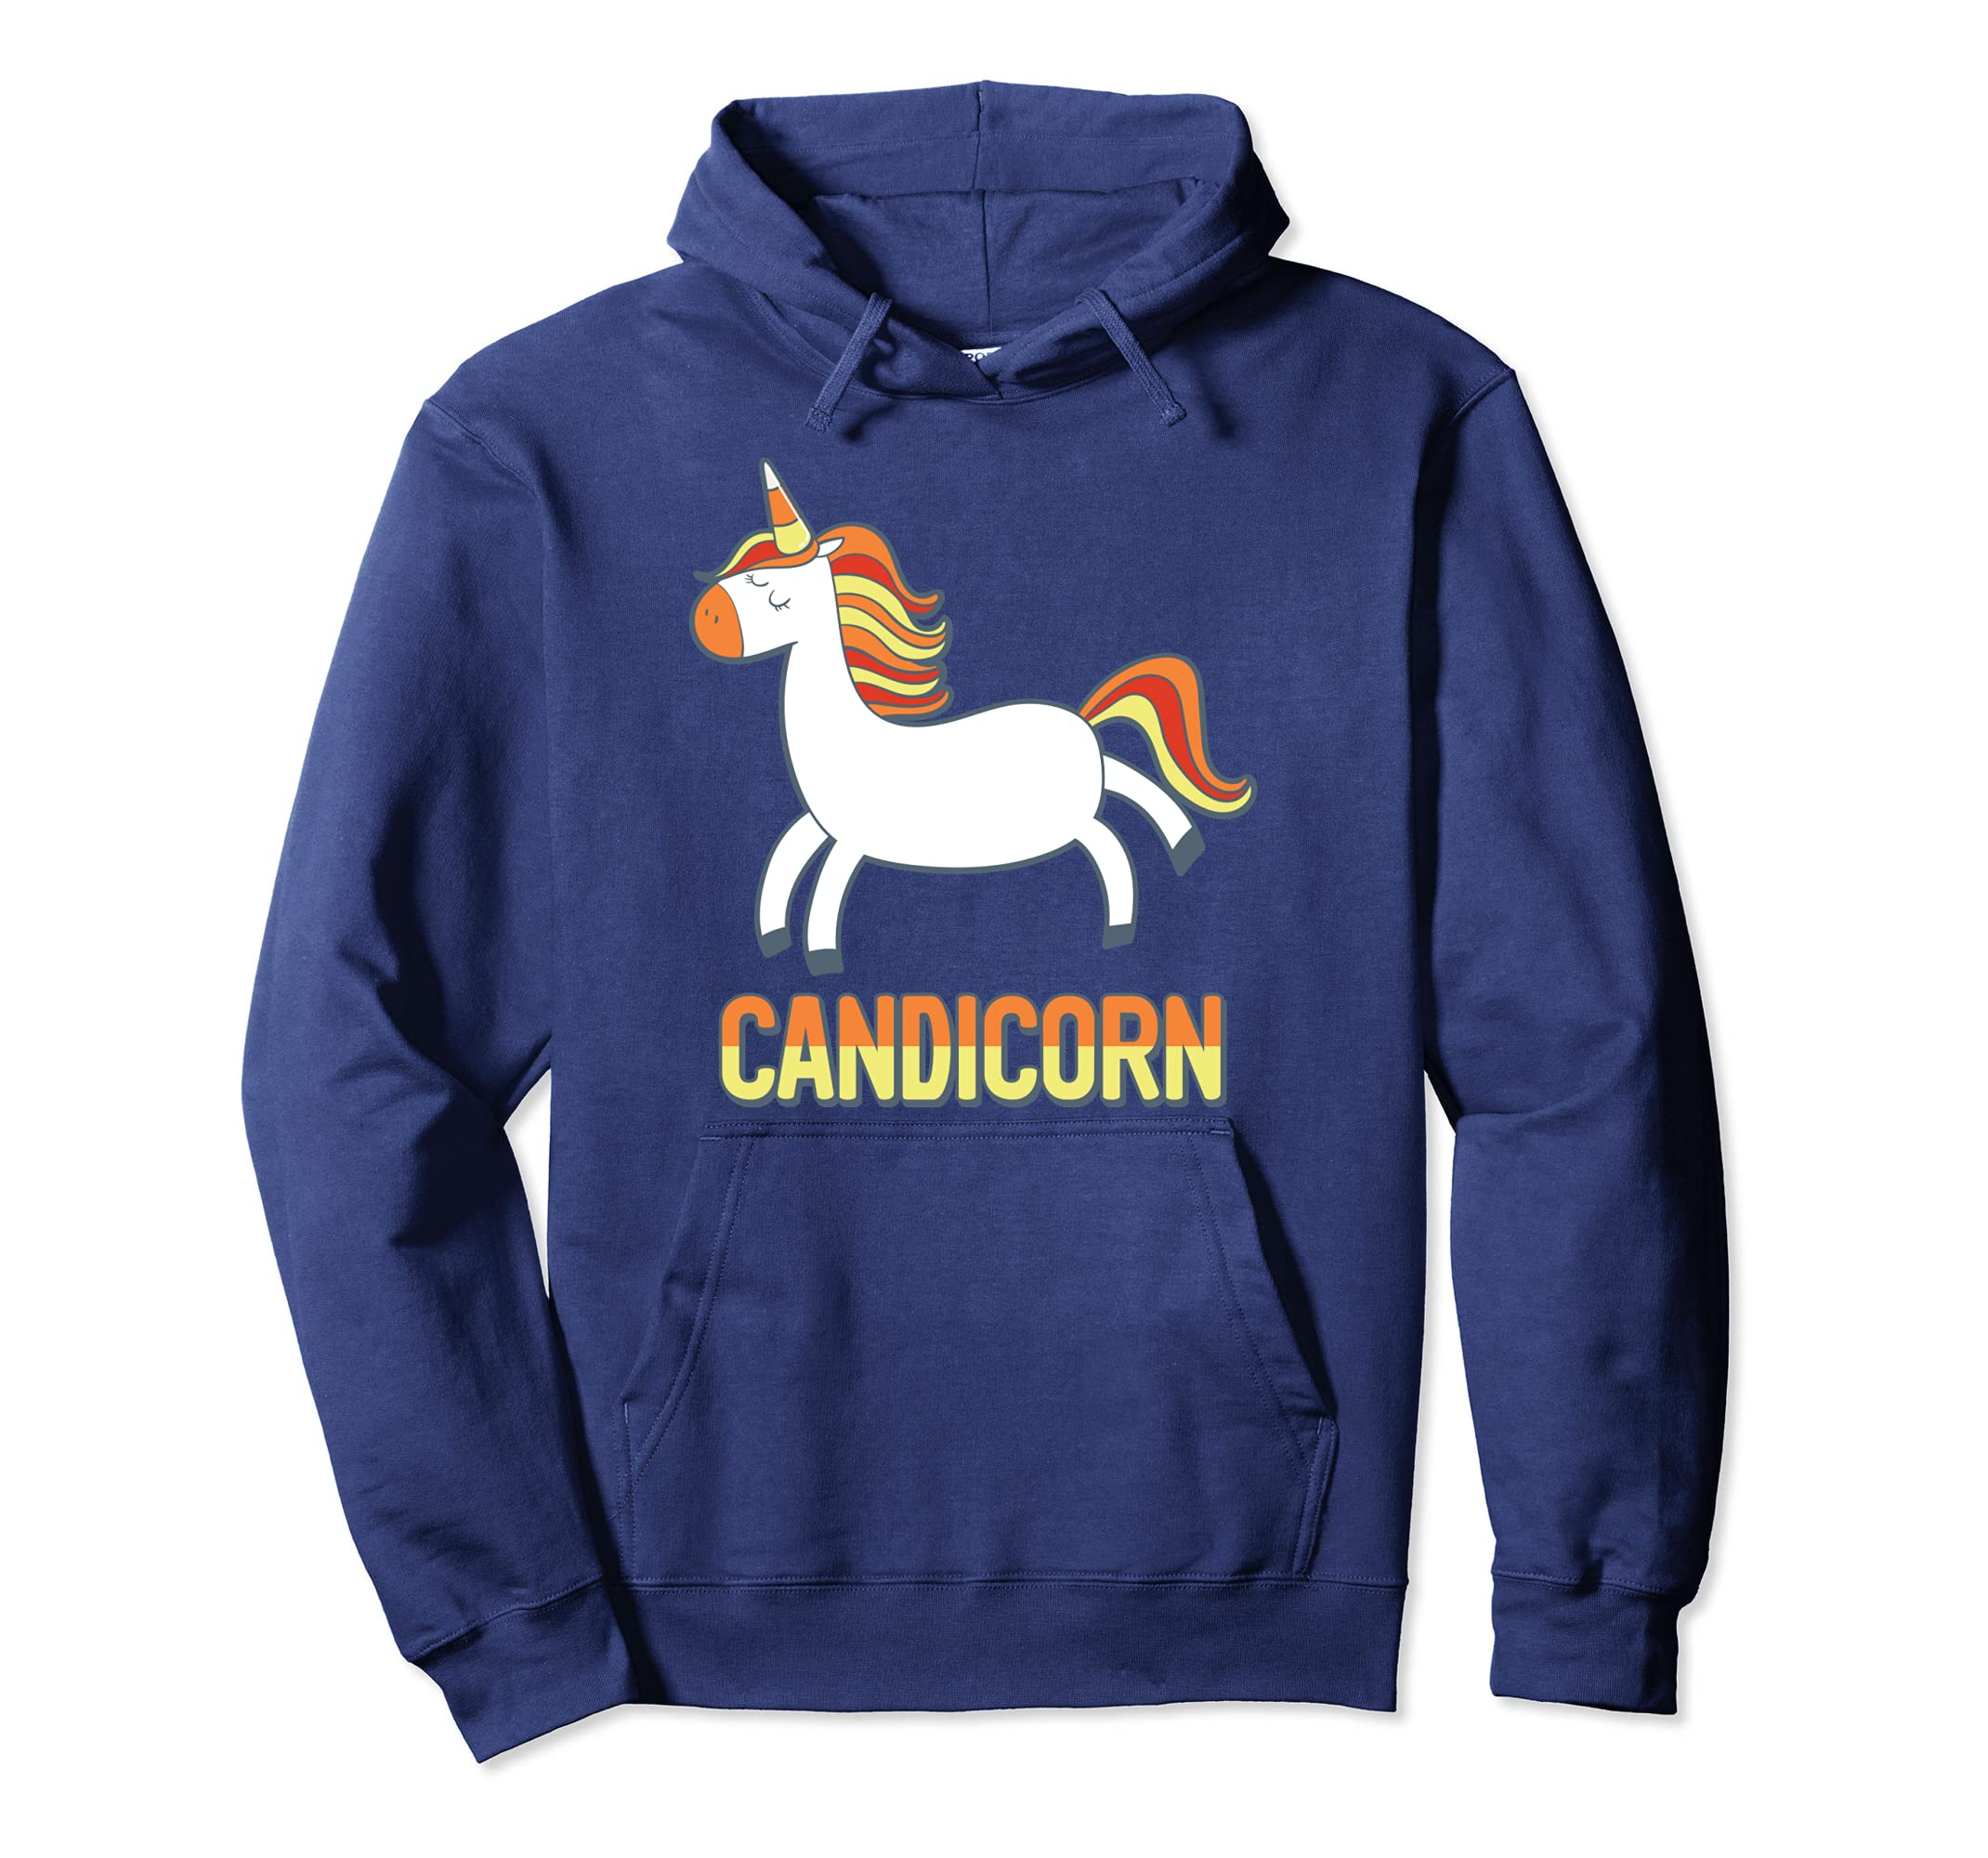 Cute Candicorn Halloween Candy Corn Unicorn Hoodie-ANZ